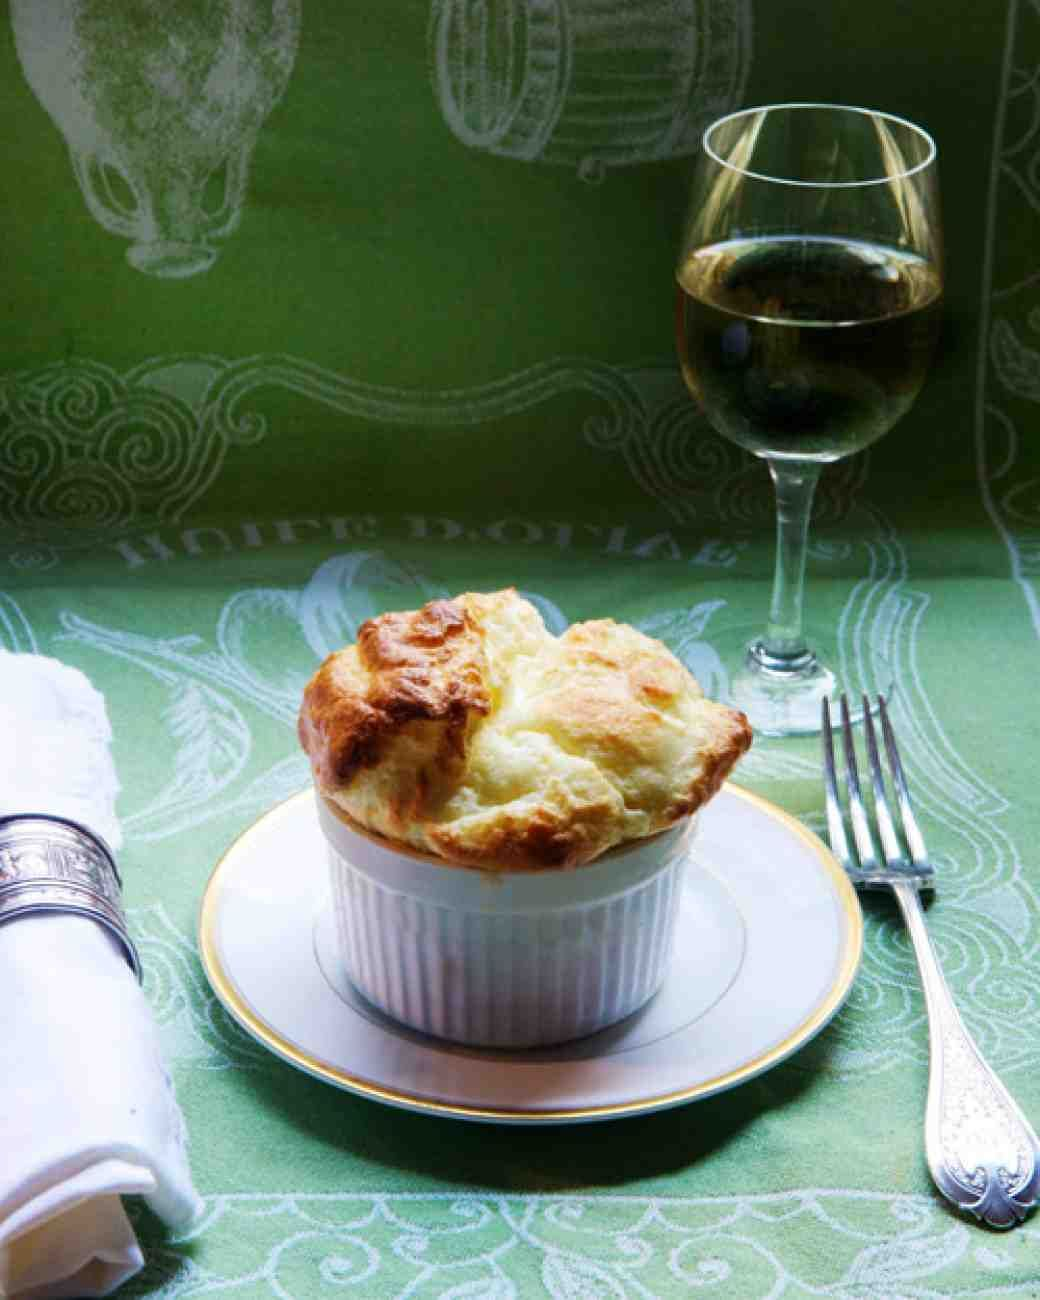 Cheese Souffle Recipe Cooking For One Yorkshire Pudding Recipes Joy Of Cooking